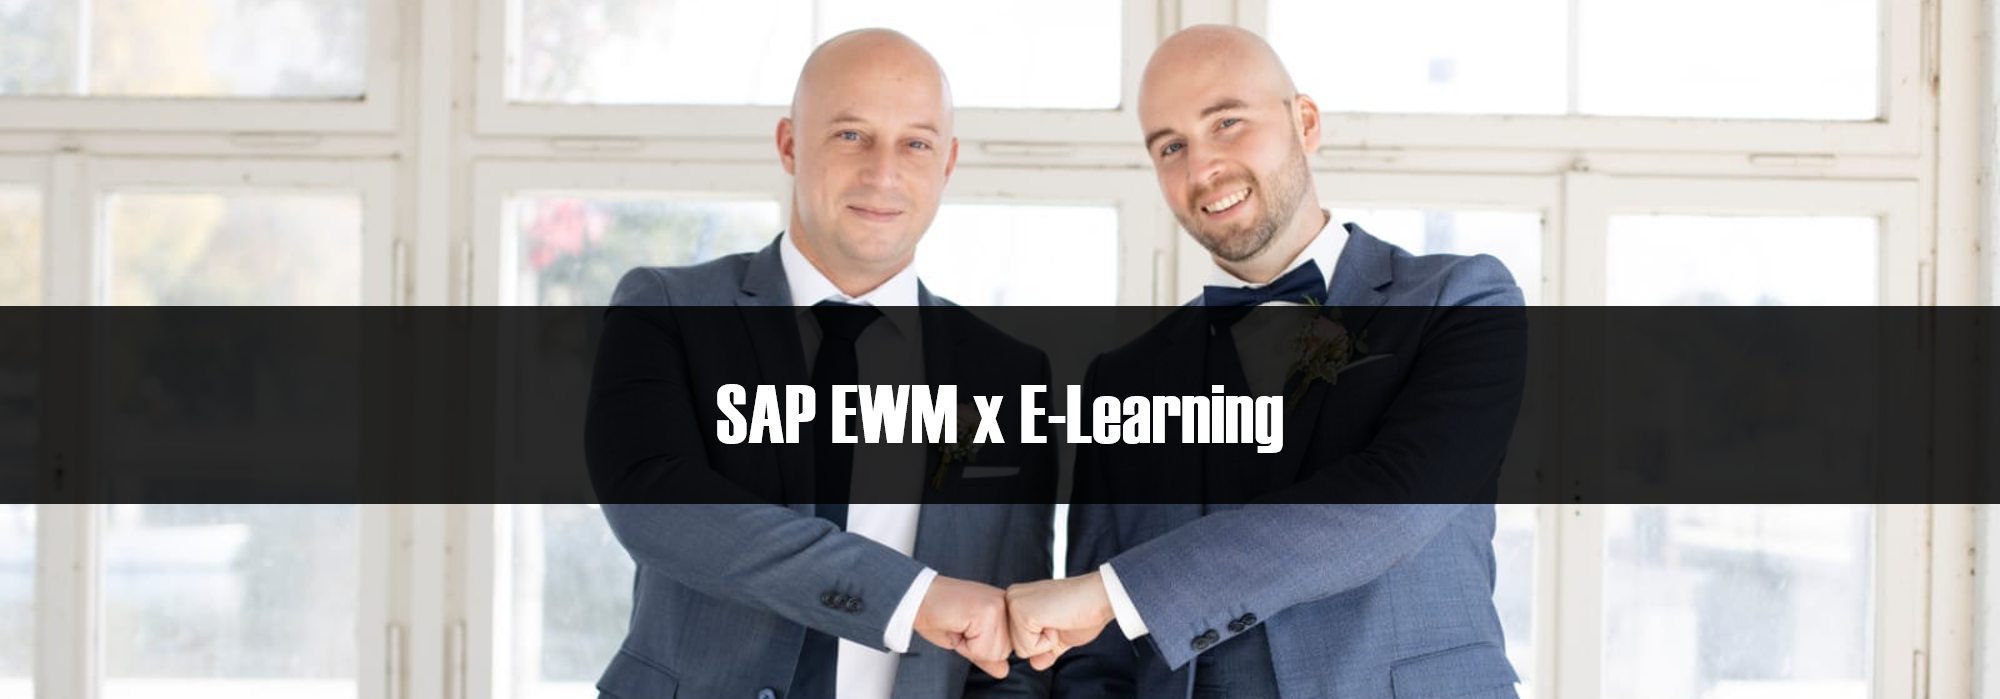 SAP EWM x E-Learning